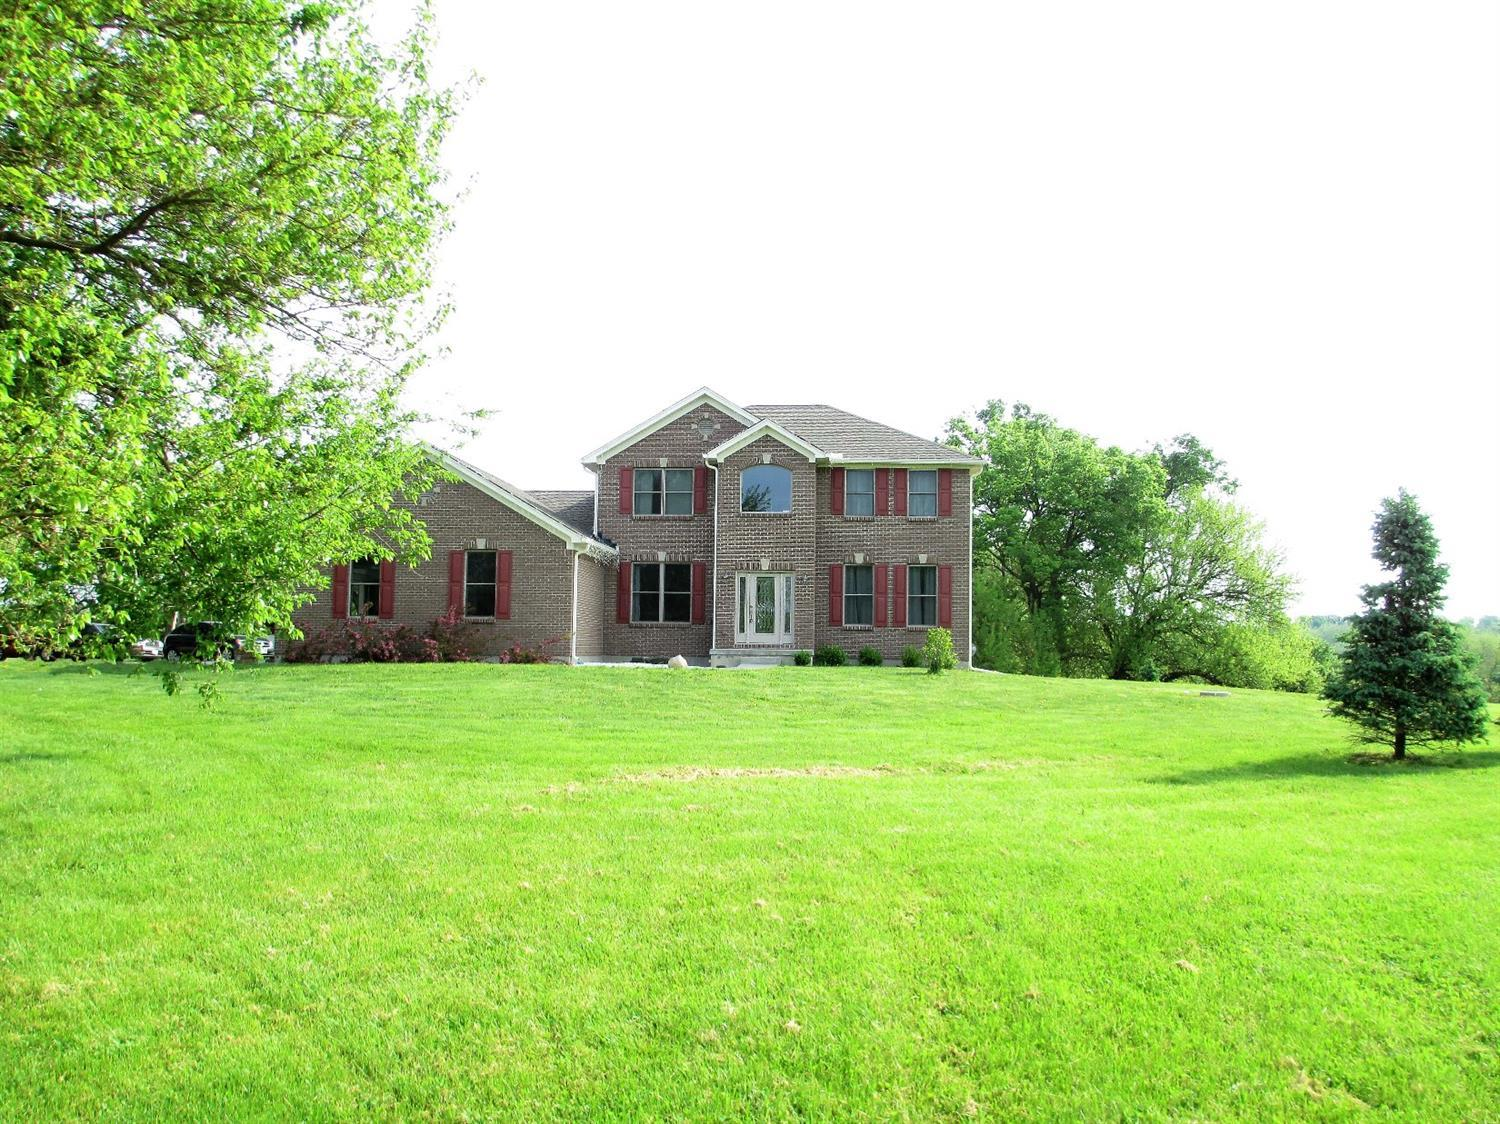 Property For Sale In Milford Oh